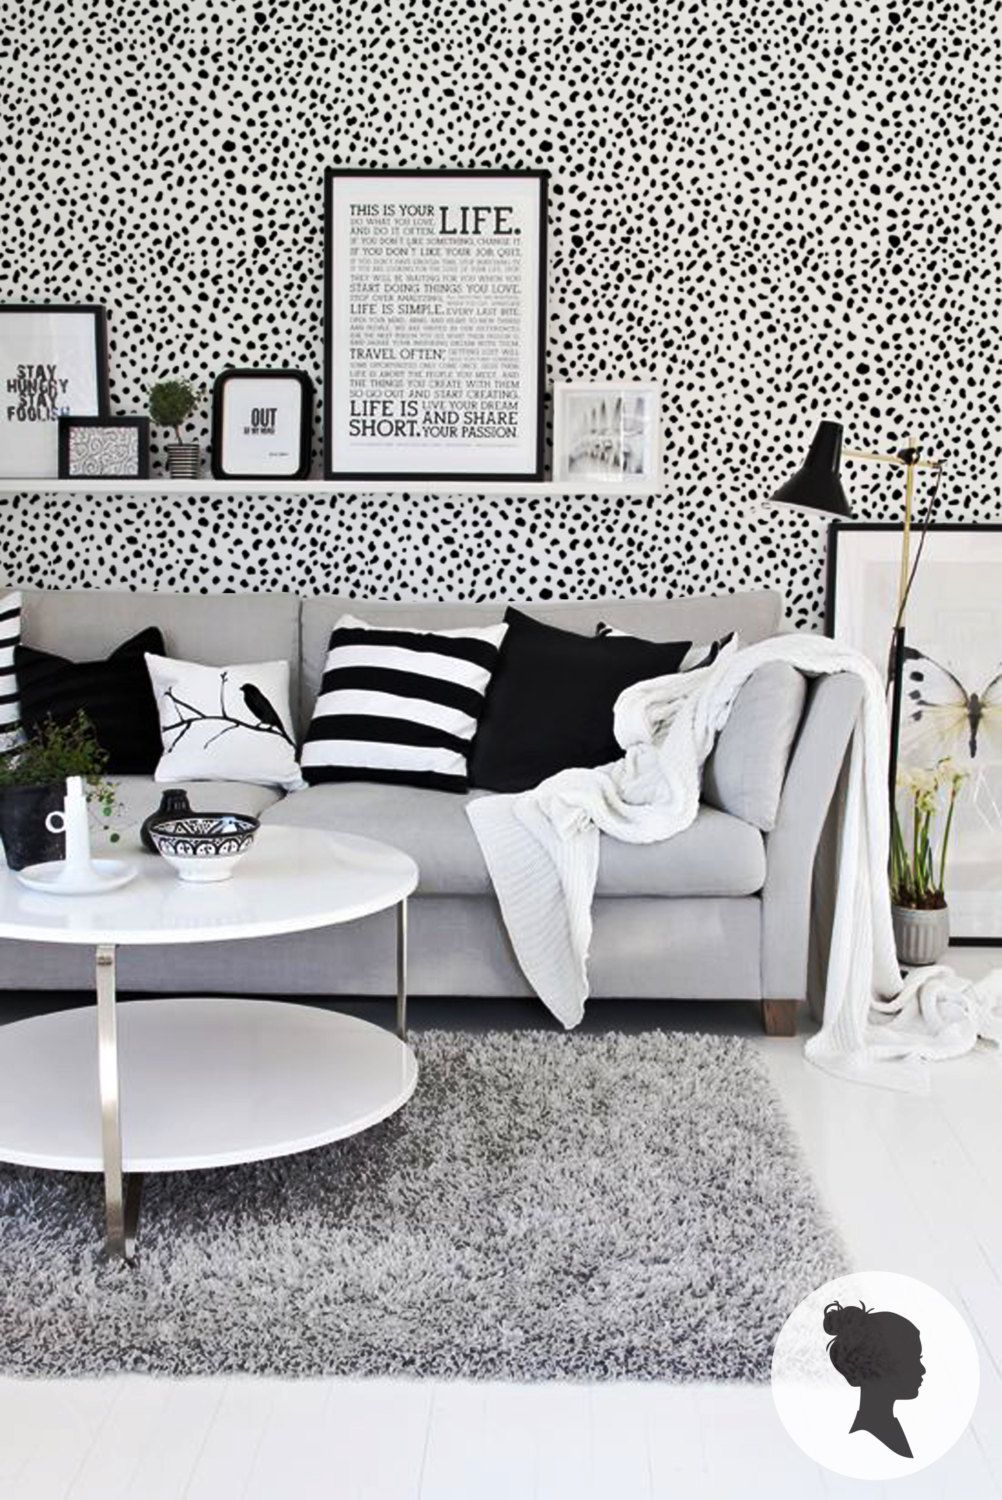 Dalmatian Pattern Wallpaper Trendy Animal Print Contemporary Traditional Or Removable Wallpaper Living Room Interior Tiny House Interior Design Your Home #removable #wallpaper #living #room